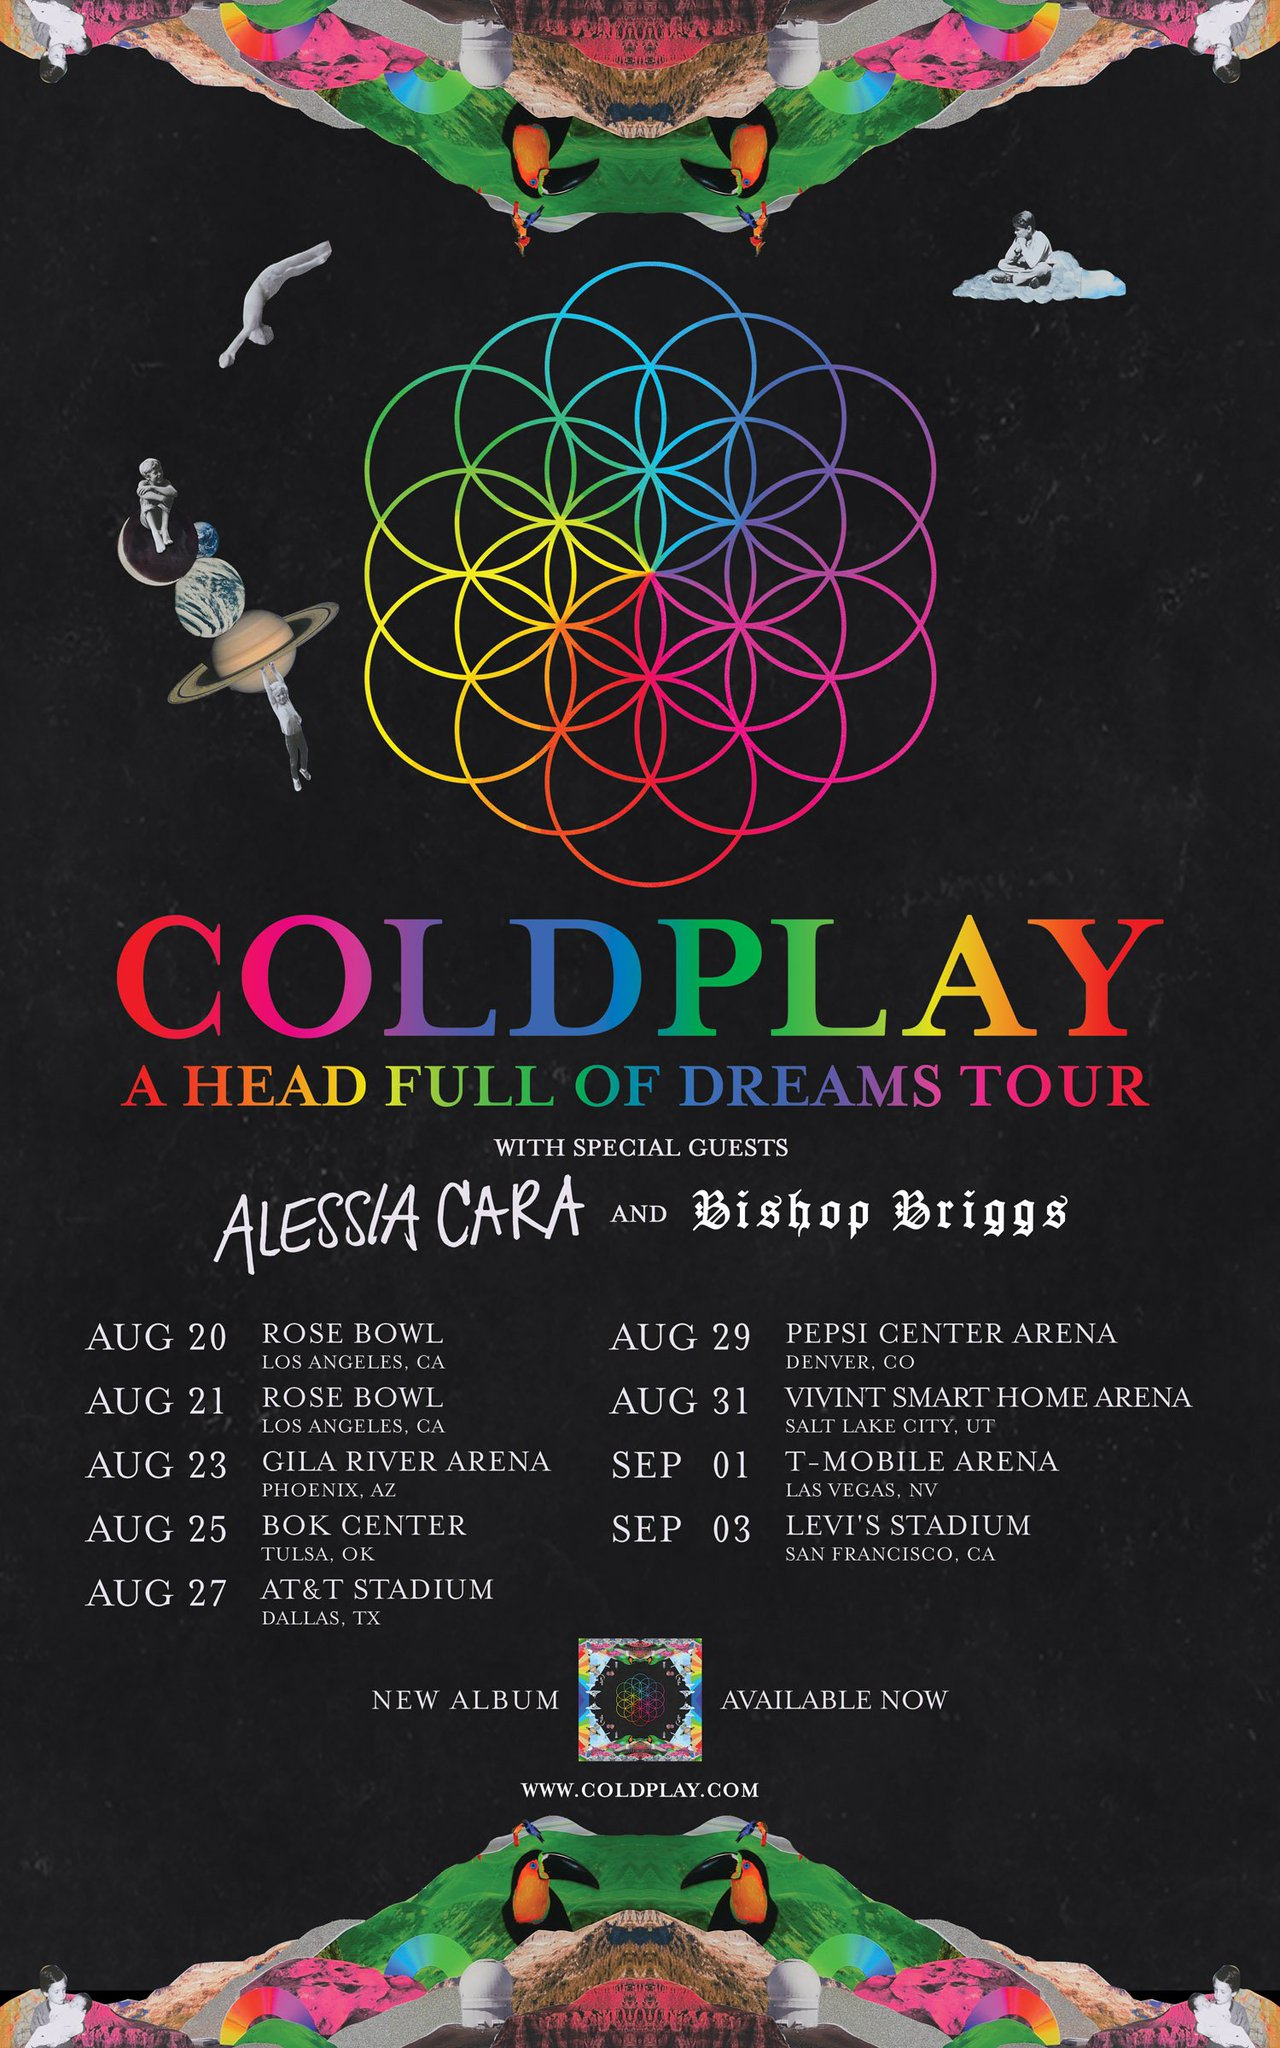 Coldplay On Twitter Quot We Re Pleased To Announce That